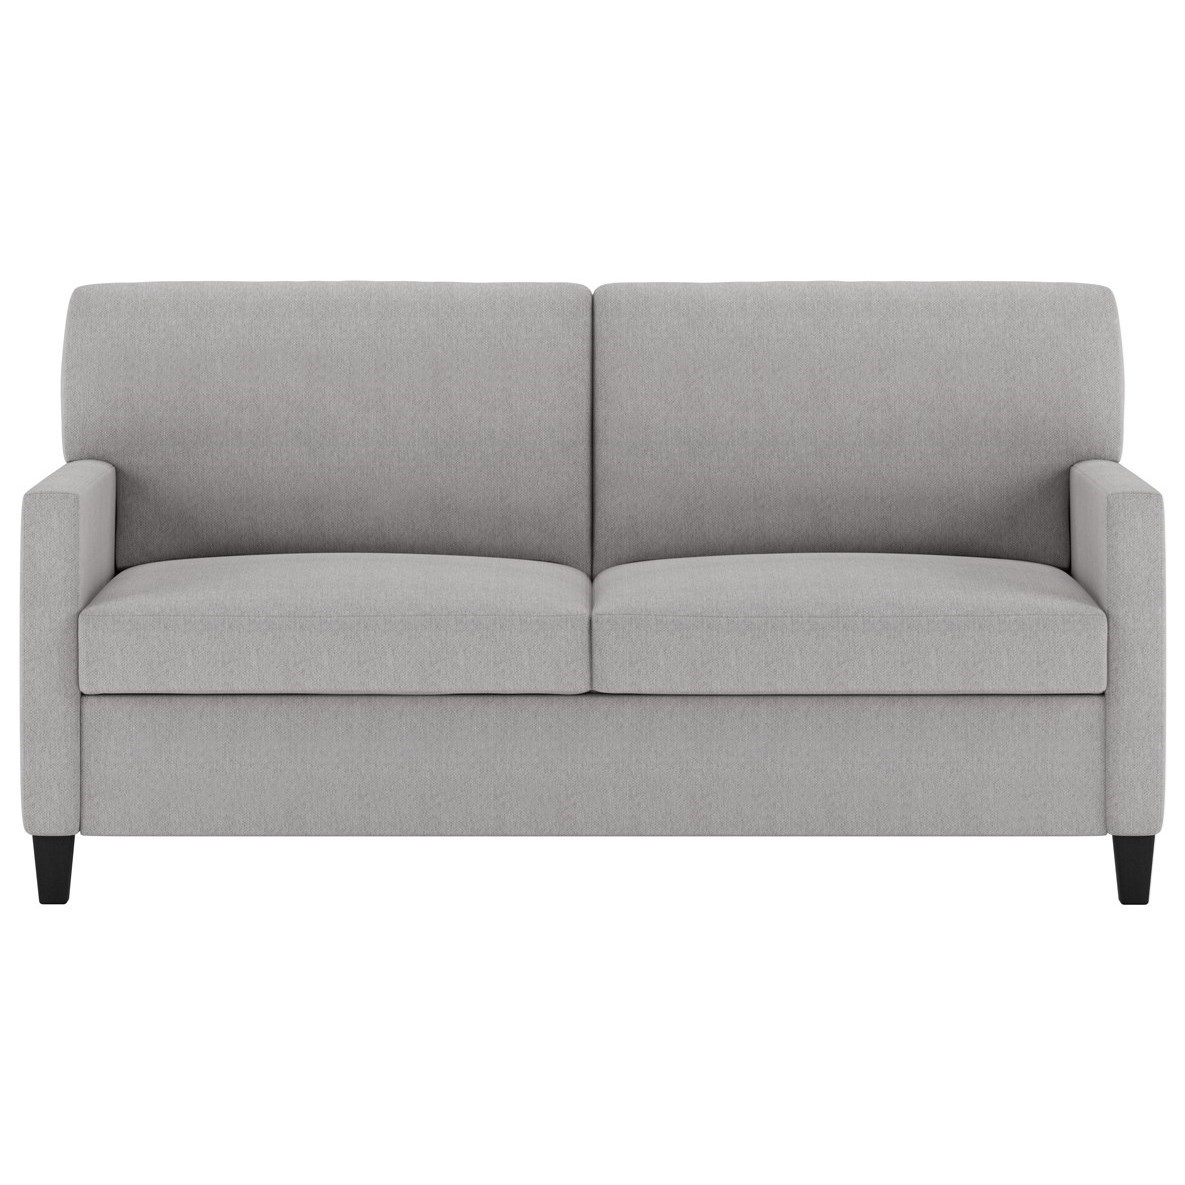 Conley Queen Sleeper Sofa by American Leather at Saugerties Furniture Mart